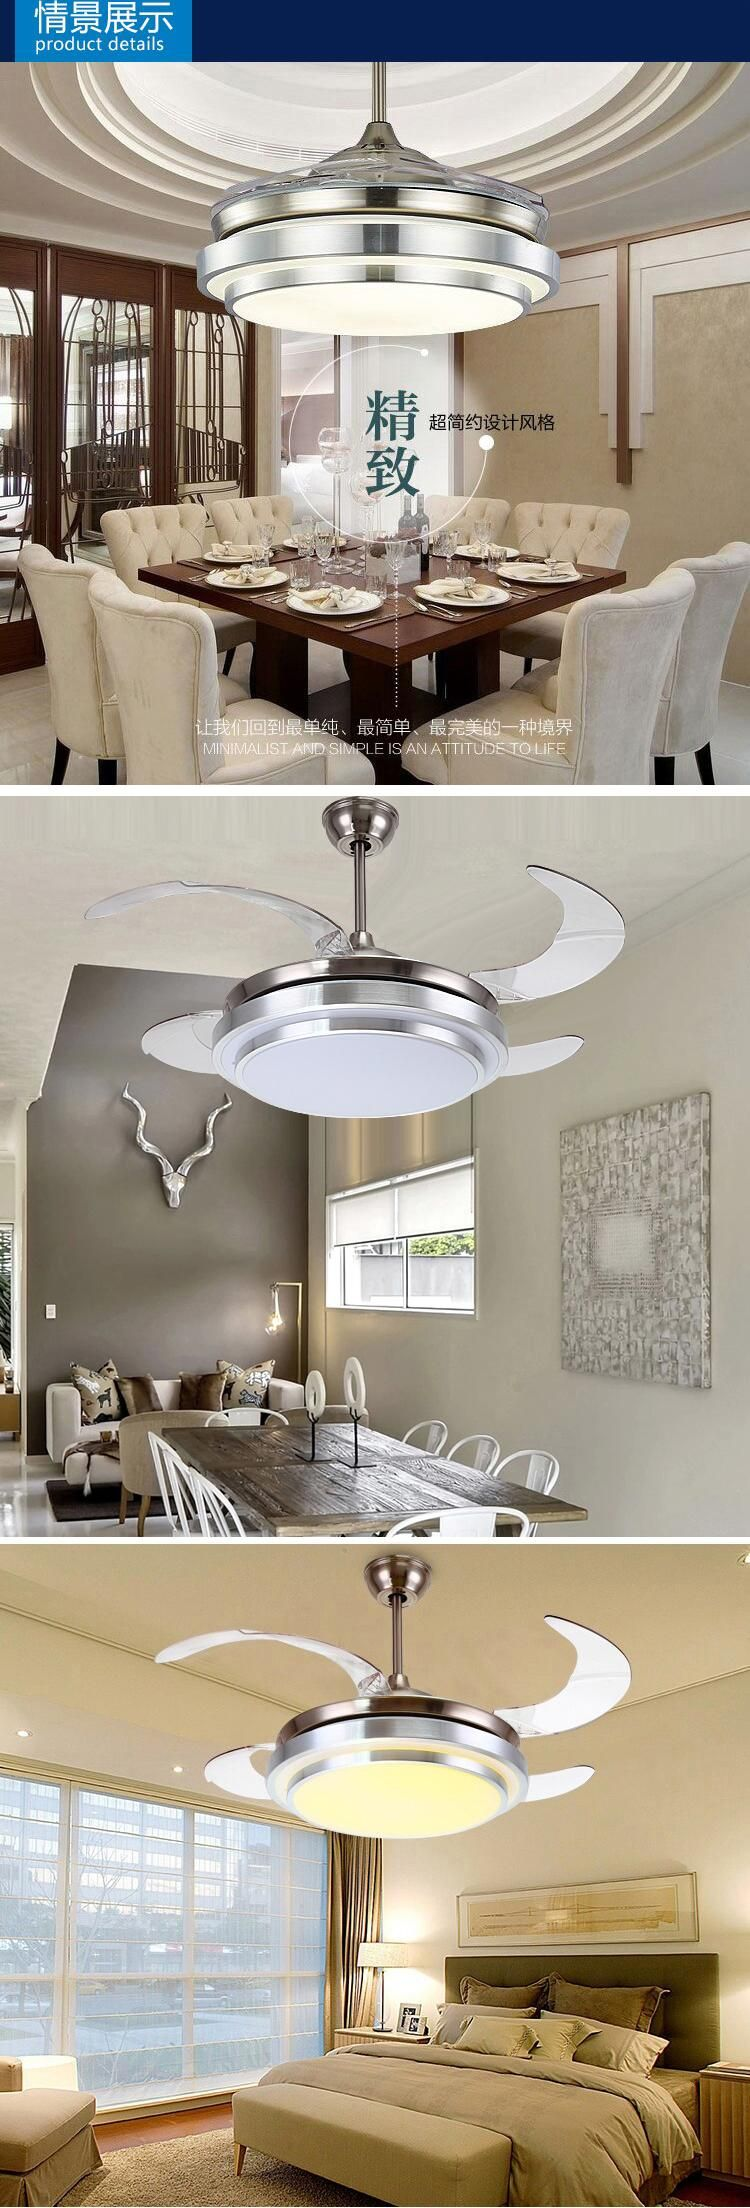 Quiet Ceiling Fans For Bedroom Best Ideas About Fan And Interalle